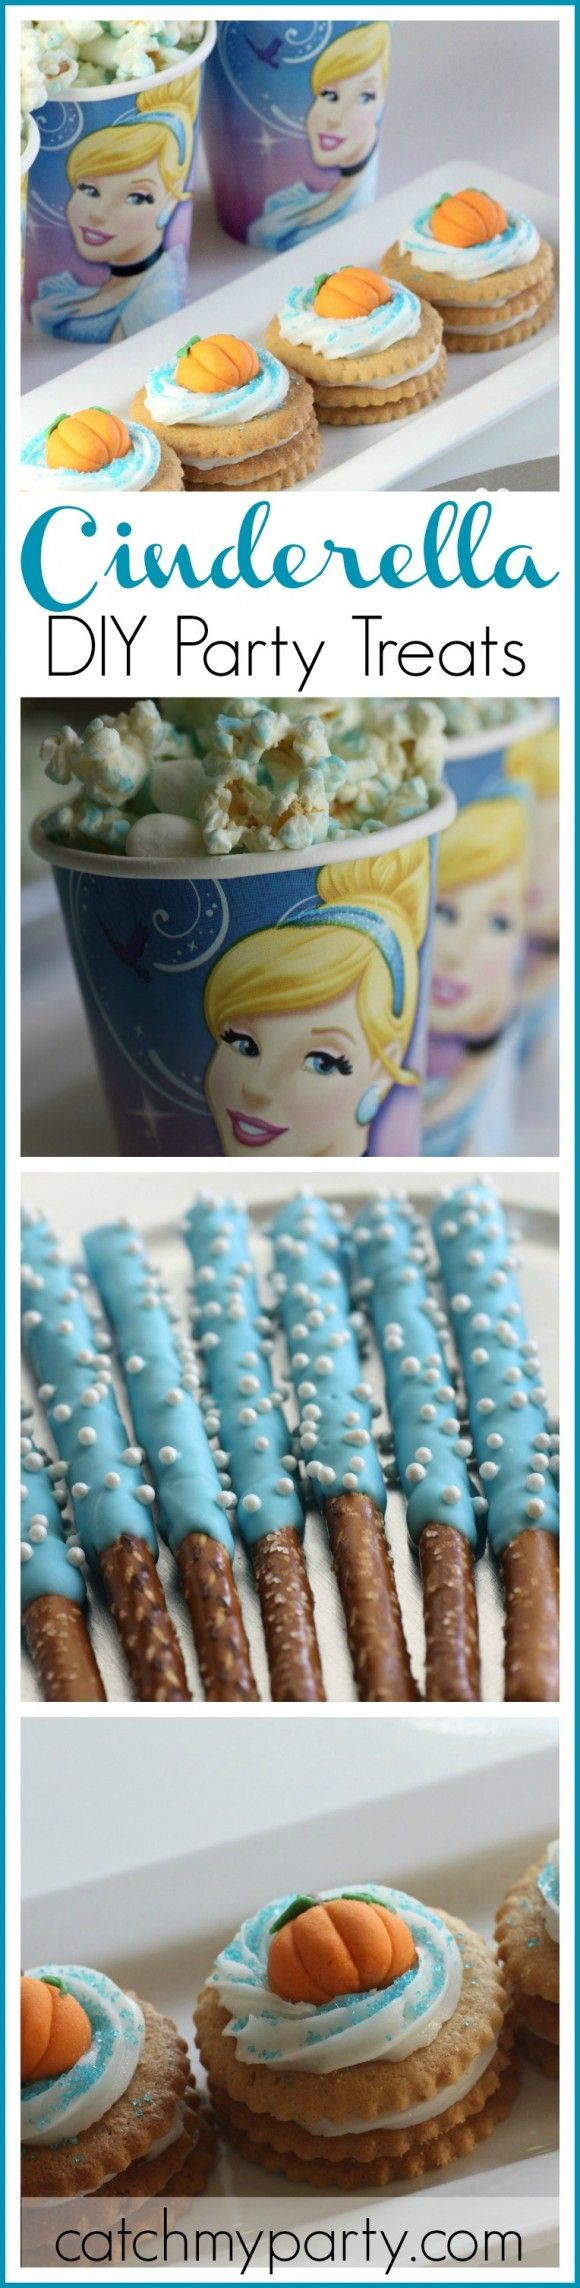 Check out my Cinderella birthday party dessert table treat ideas! These DIYs are all simple to make and would look great at a gorgeous Cinderella princess party! See more Cinderella parties at CatchMyParty.com